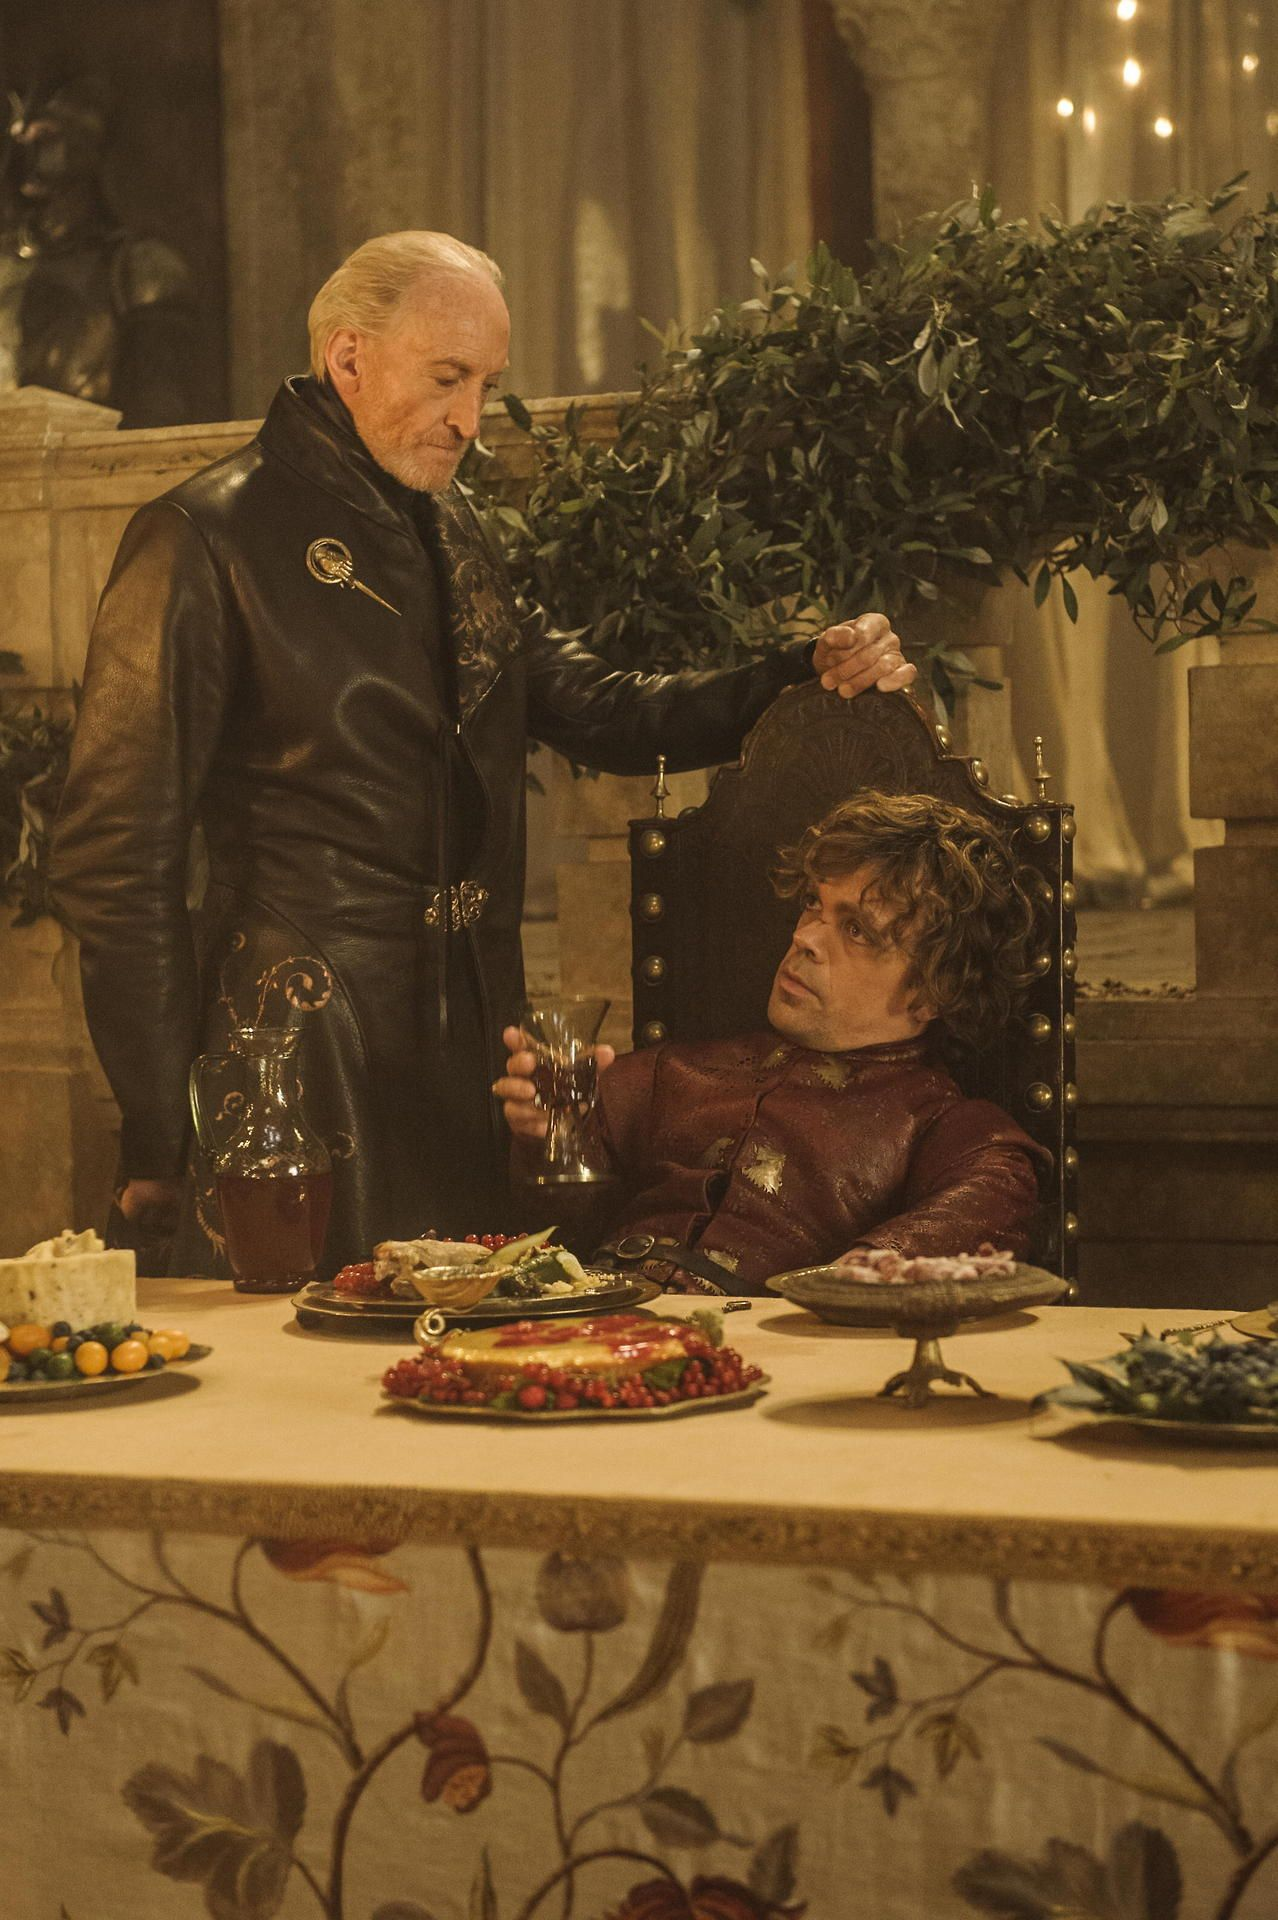 Second Sons - Game of Thrones - Season Three: Episode 8 - Tywin Lannister and his son Tyrion at the Wedding Feast